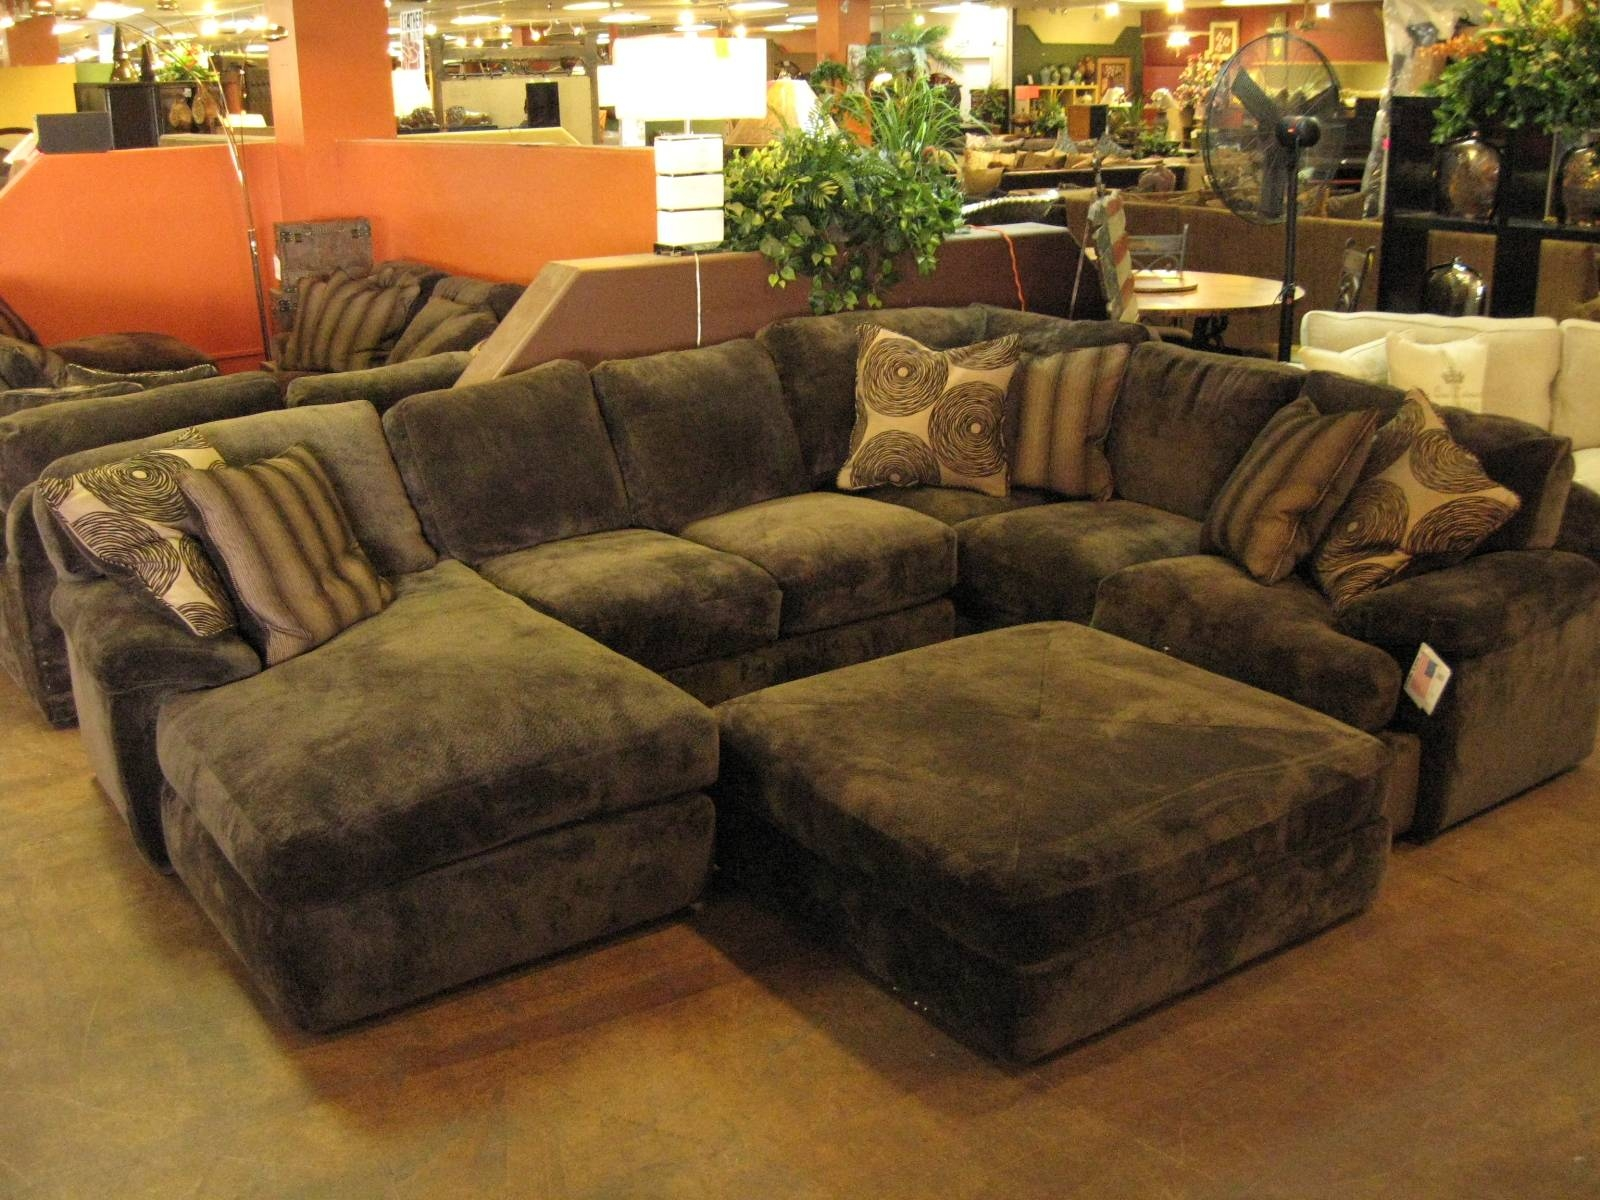 Sofas Center : Wonderful Cheap Rednal Sofa About Remodel Create regarding Goose Down Sectional Sofa (Image 25 of 25)